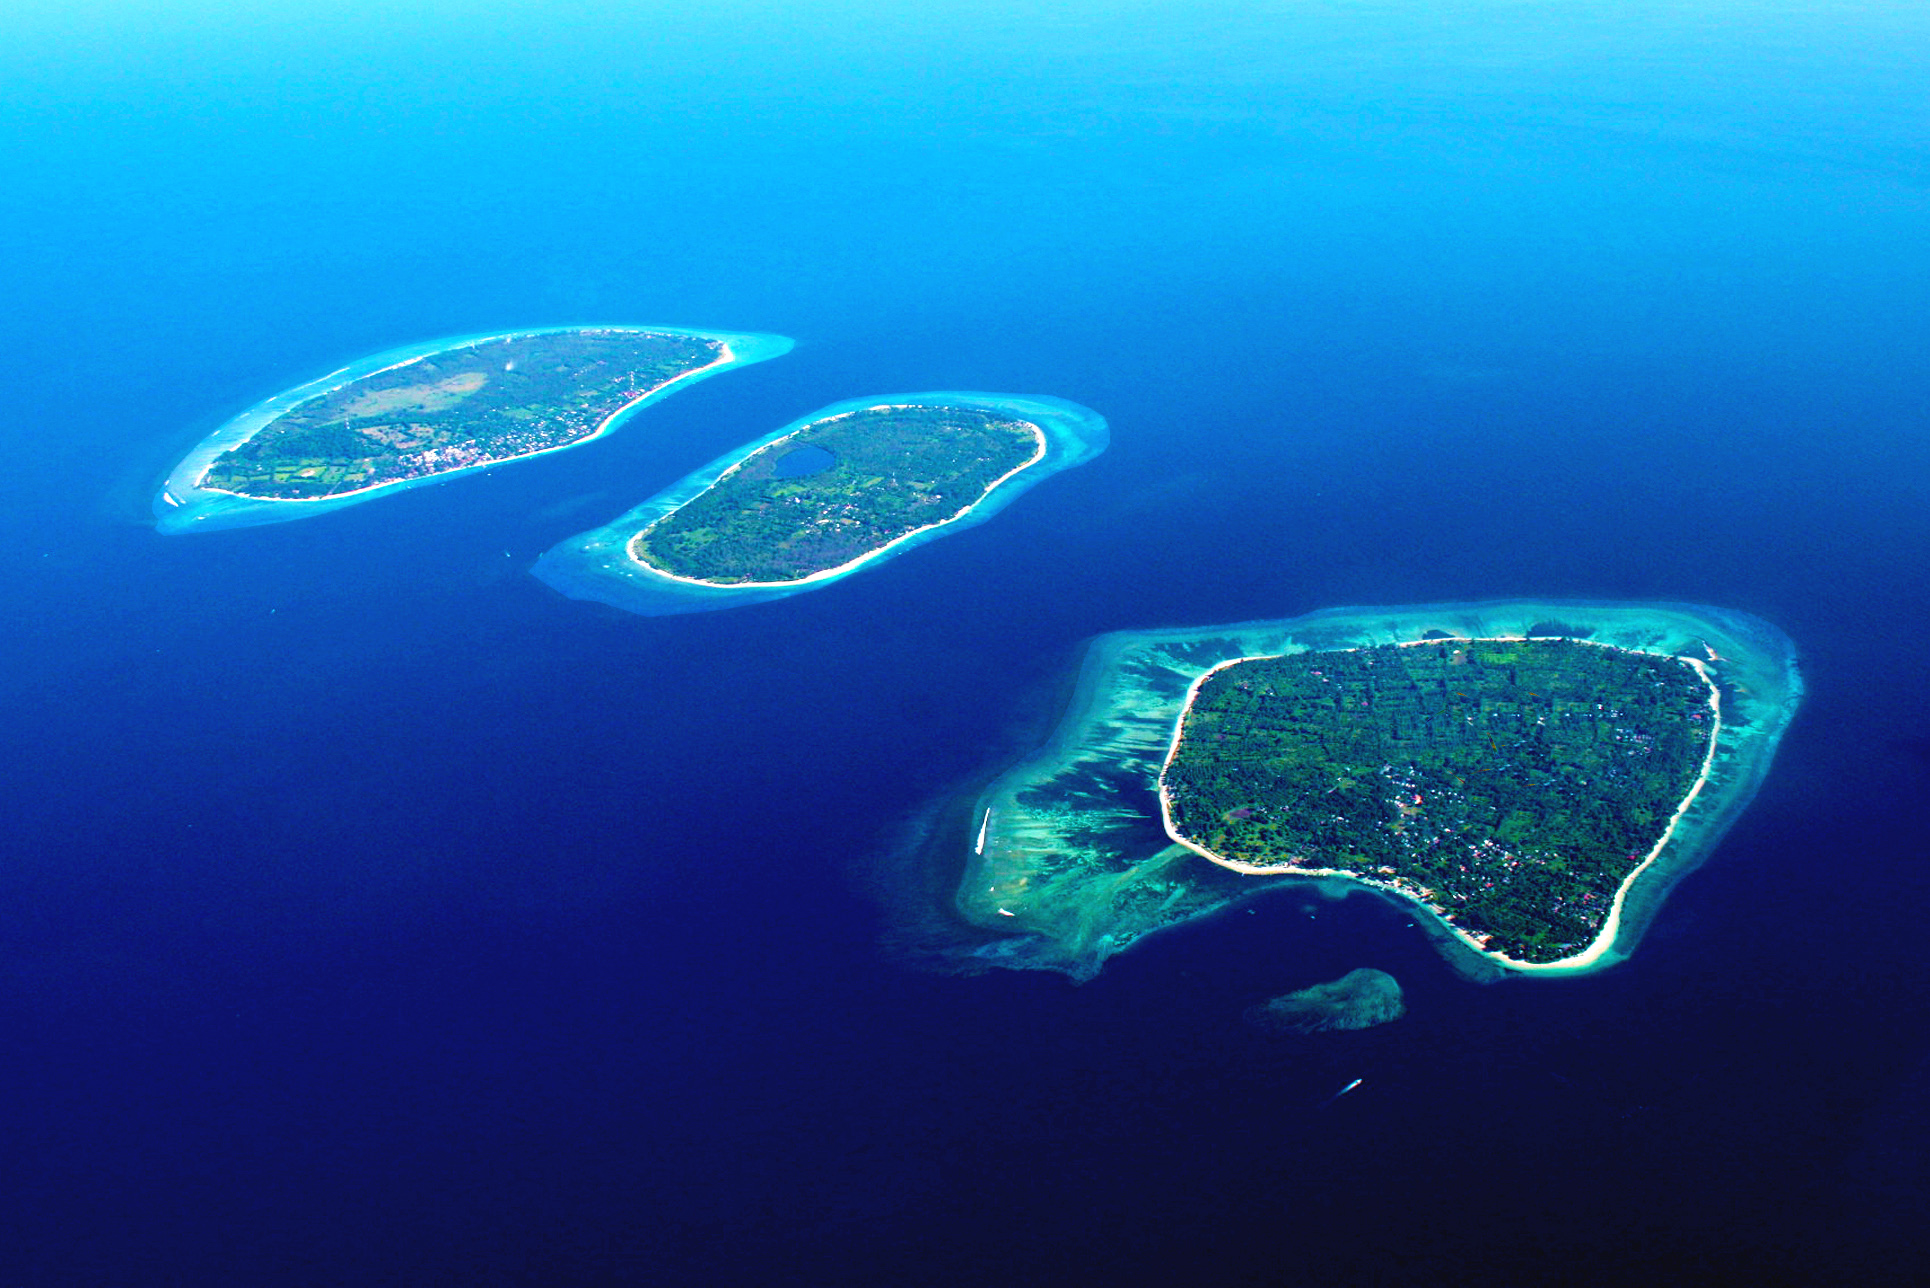 INDONESIA: LE TRE ISOLE GILI